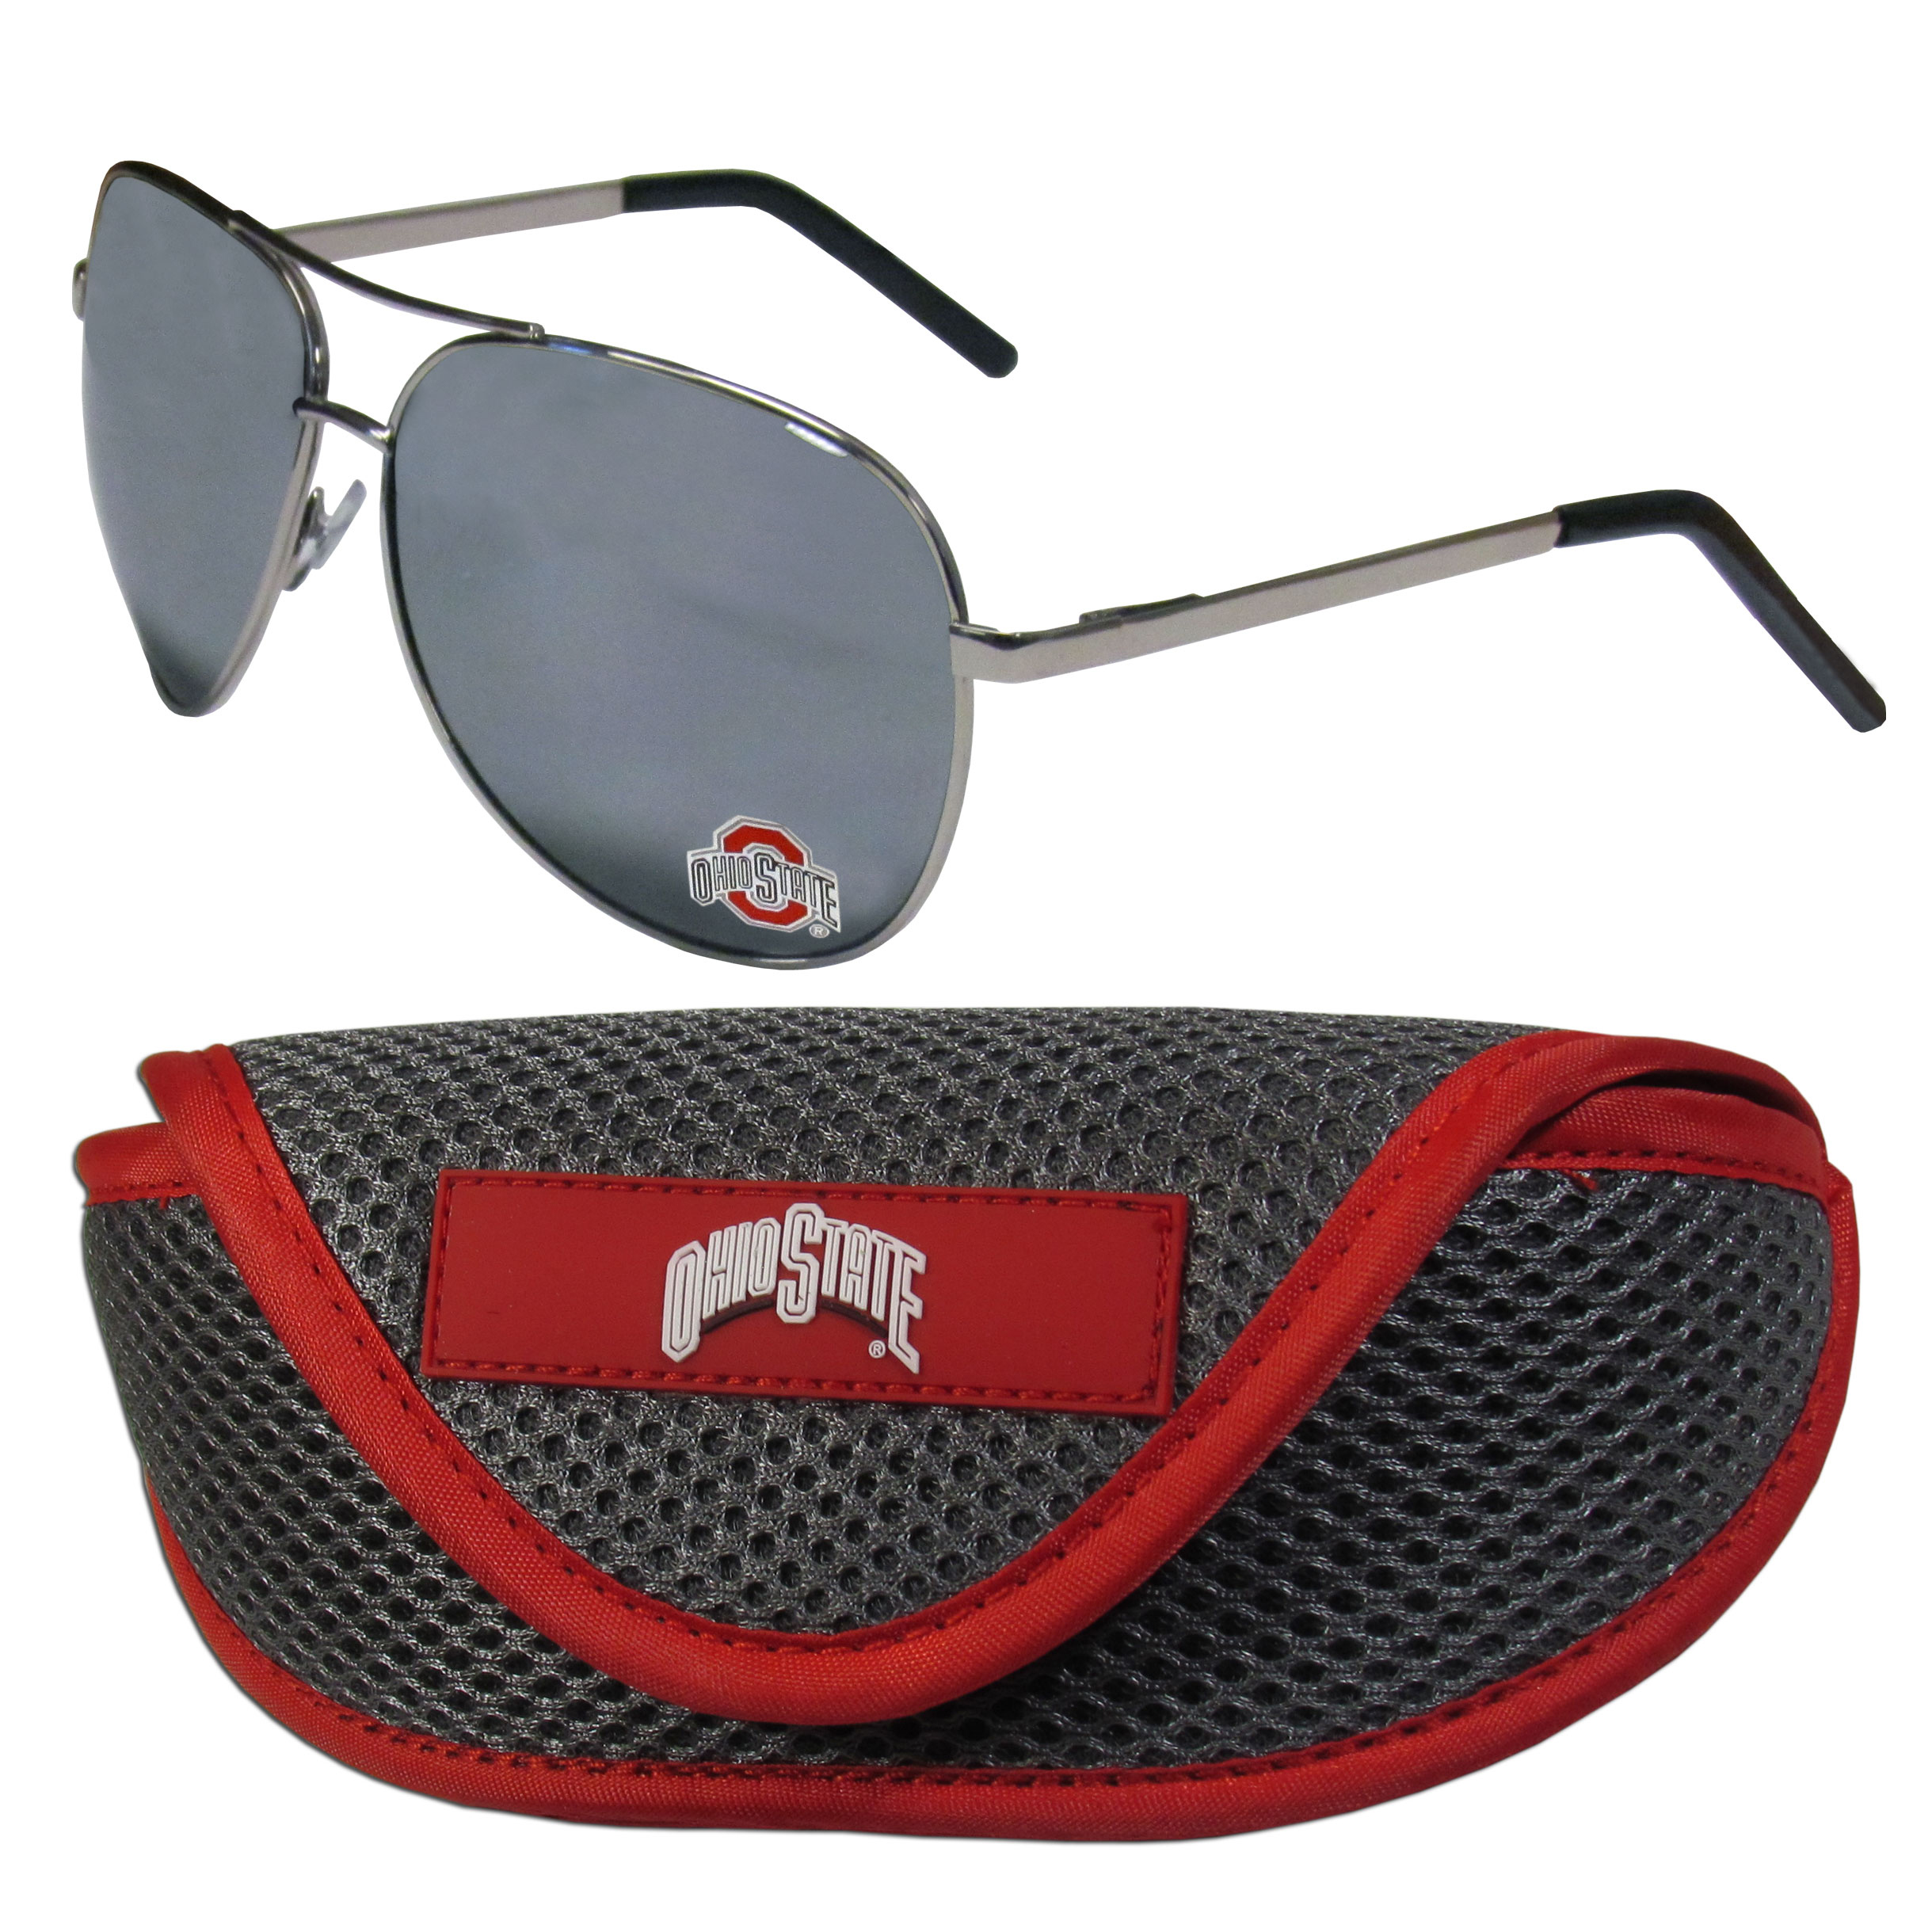 Ohio St. Buckeyes Aviator Sunglasses and Sports Case - Aviator sunglasses are truly an iconic retro fashion statement that never goes out-of-style. Our Ohio St. Buckeyes  aviator sunglasses pair this classic look with your love of the game. The iridium coated lenses reduce glare while driving, boating, golfing and their 100% UVA/UVB rating provides you with the maximum UV protection for all your outdoor activities. A millennial favorite, these affordable designer frames are the perfect eyewear accessory for a sports fan that is looking for high-quality at an affordable price. The durable, flex hinged frames are tough enough for hiking and camping or if you prefer sun bathing by the pool or on the beach these shades will really stand the test of time. The sunglasses come with a sporty case which has a large team logo on the lid that will make even the most die-hard fan proud!